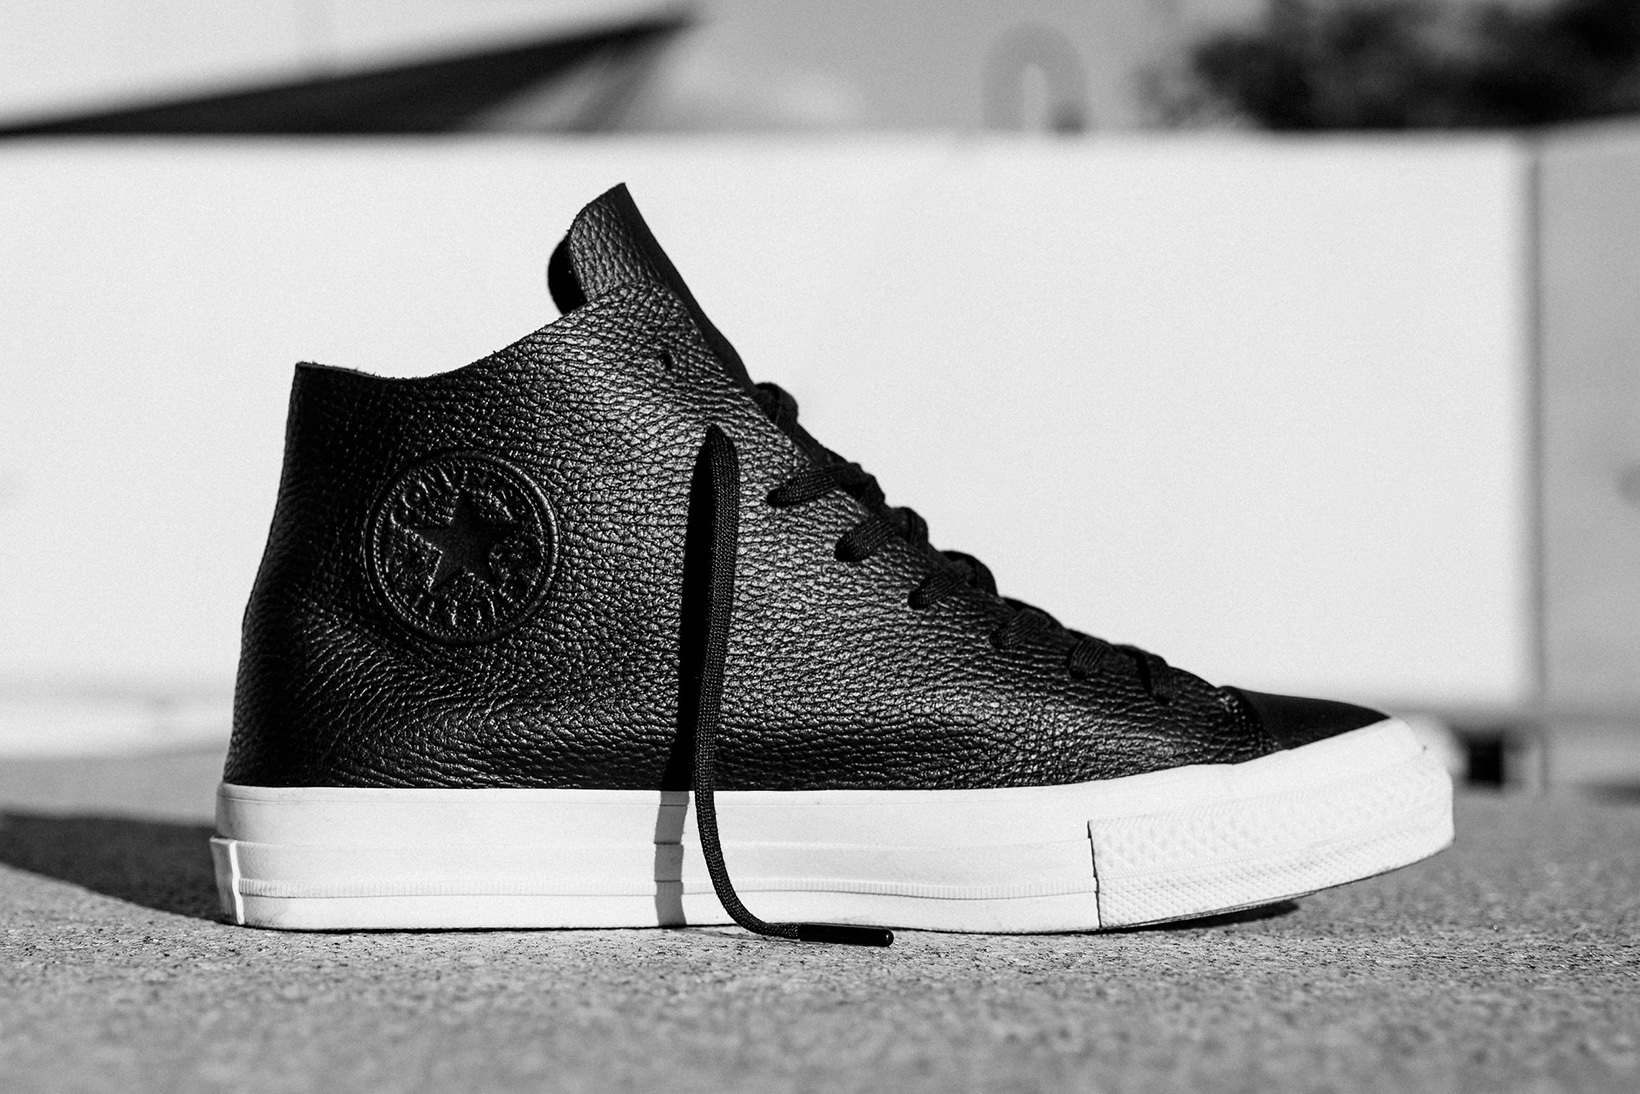 converse-chuck-taylor-prime-star-collection-01